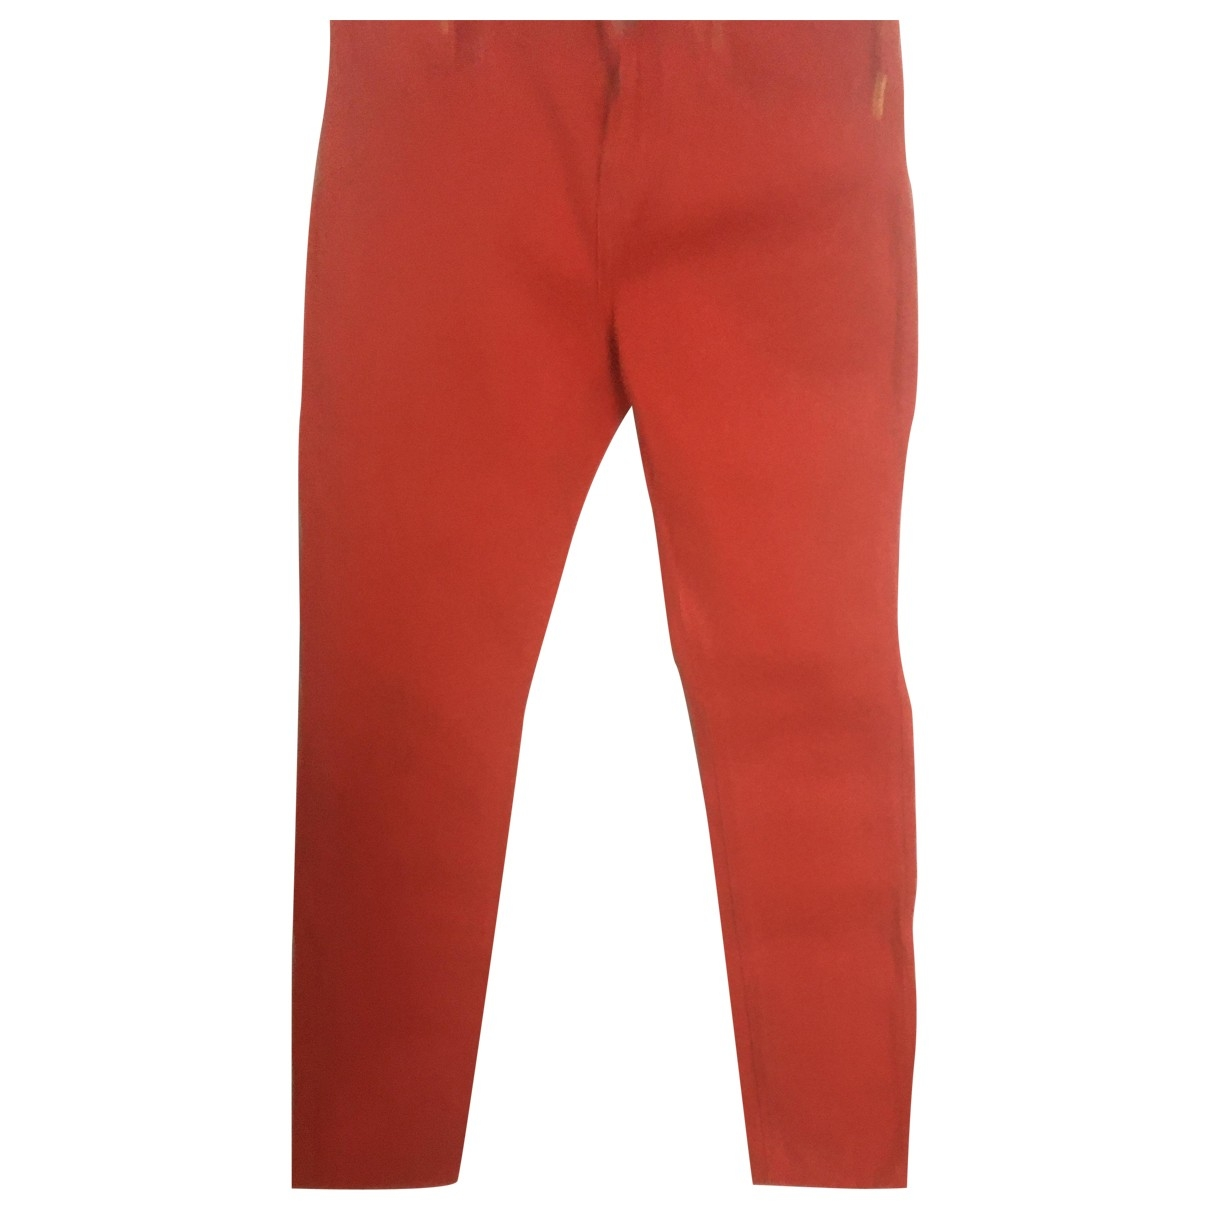 Zara \N Hose in  Orange Baumwolle